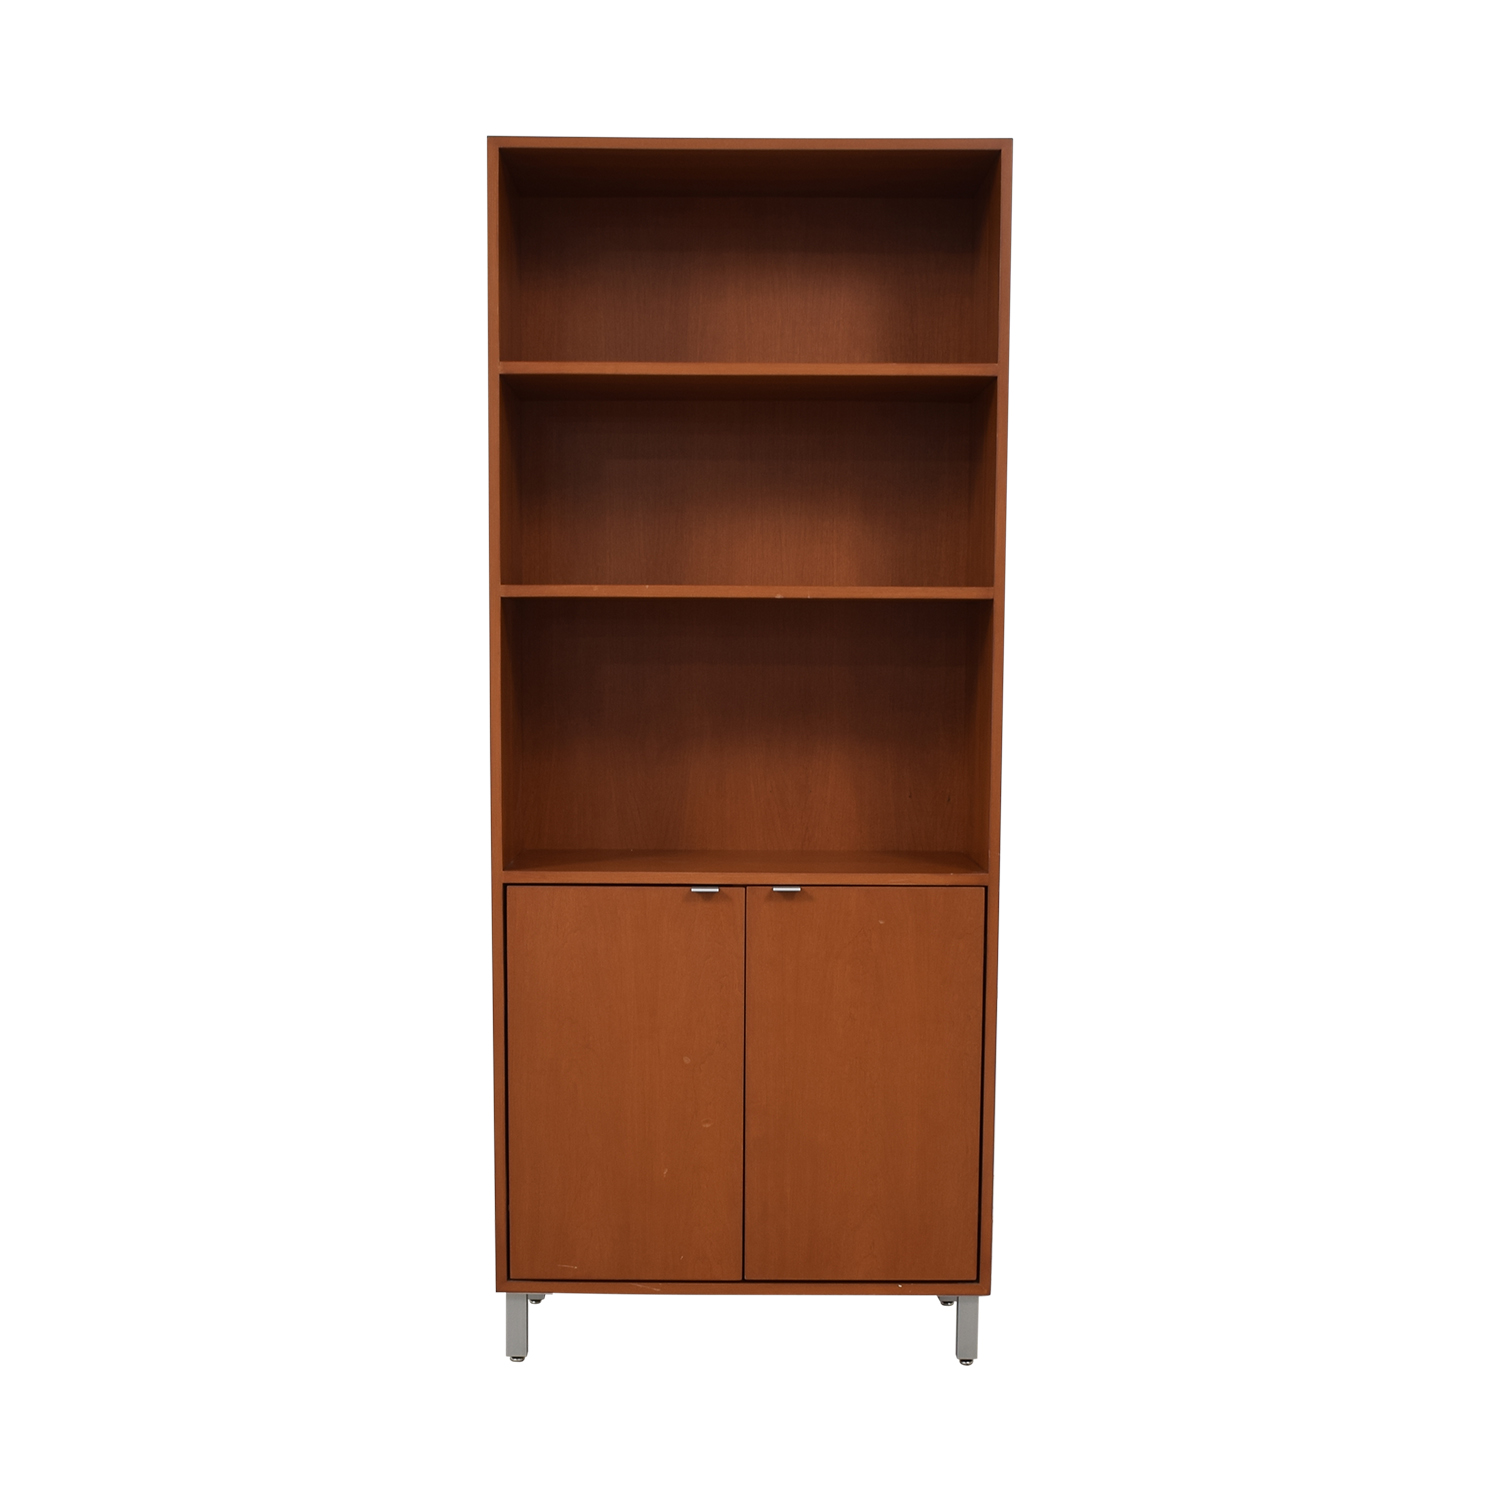 Urbangreen Furniture Urbangreen Furniture Bookshelf with Cabinet coupon